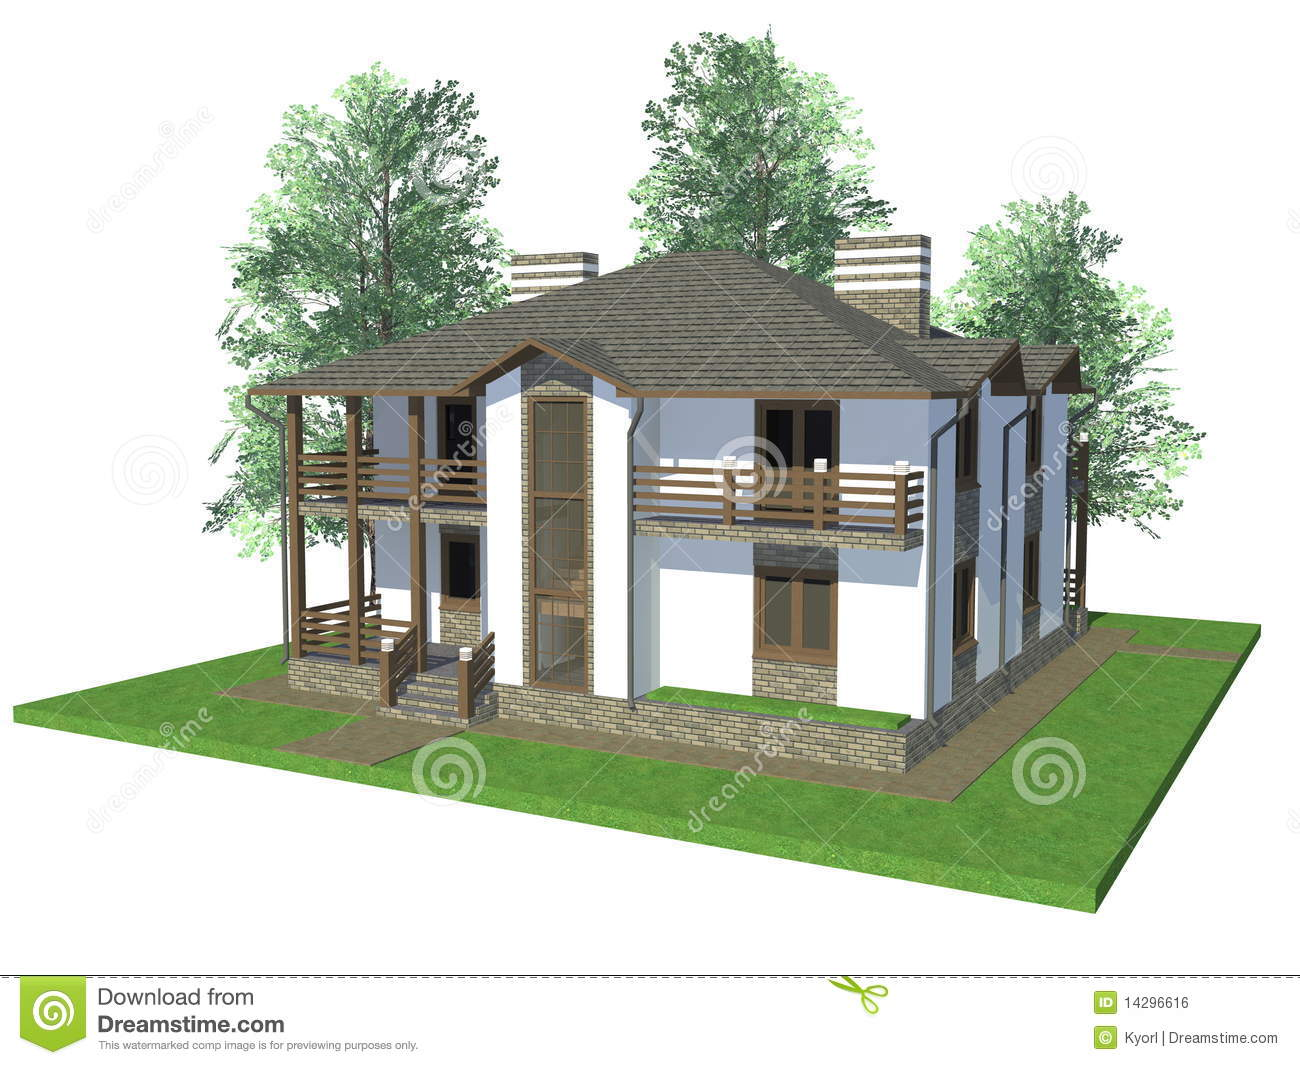 3d model home royalty free stock image image 14296616 Home 3d model